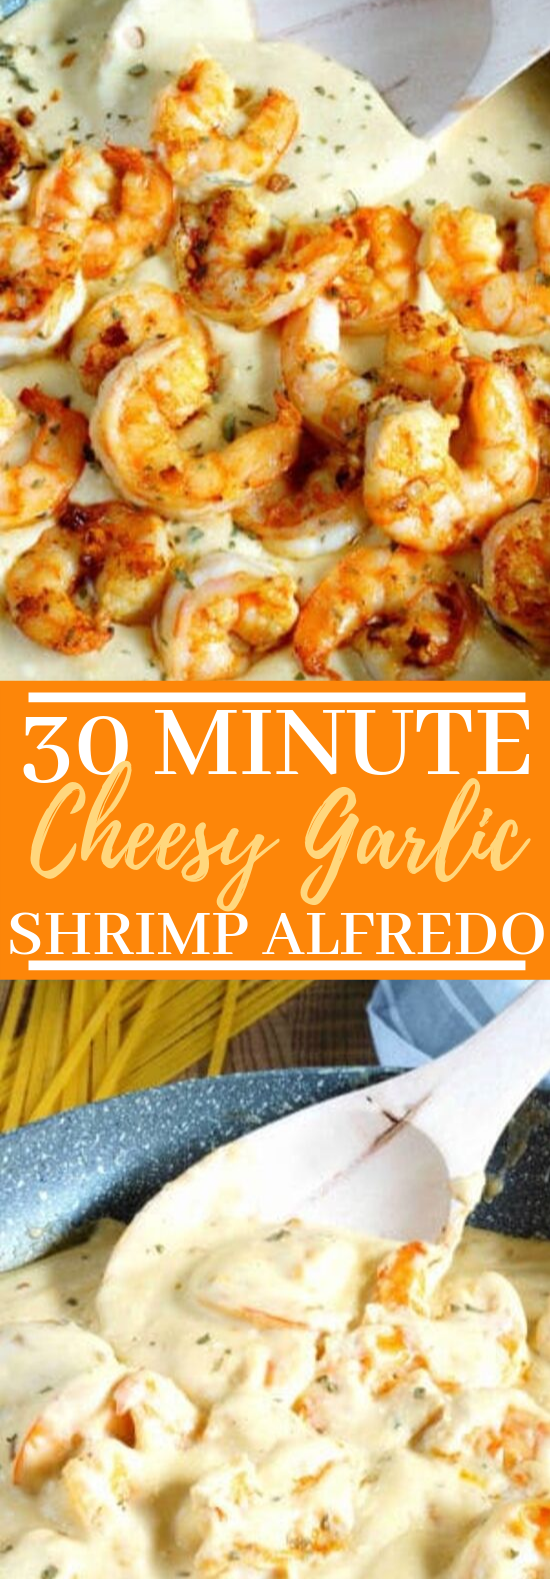 30 Minute Cheesy Garlic Shrimp Alfredo #dinner #shrimp